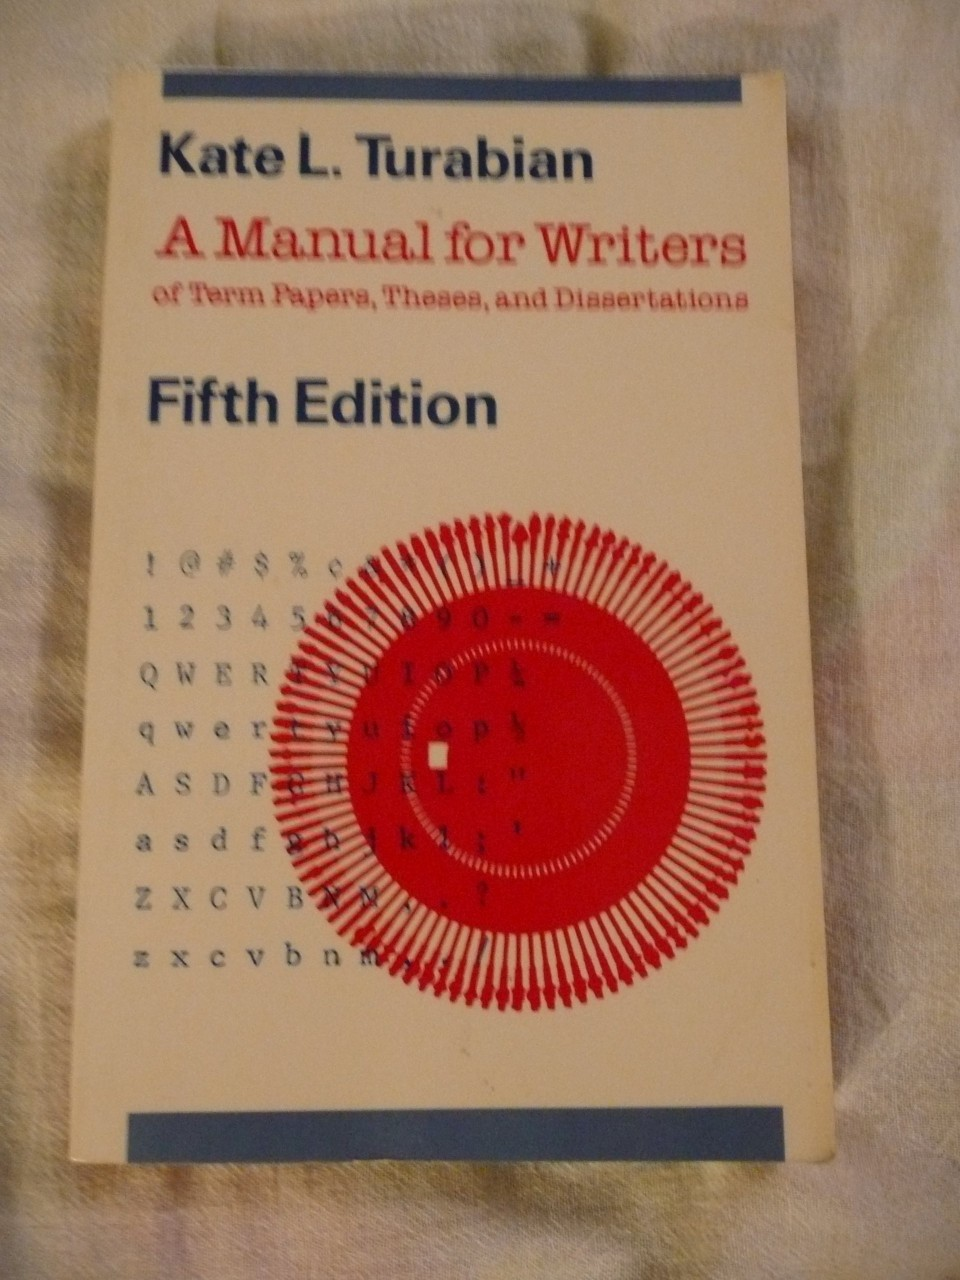 012 91nltv7olql Manual For Writers Of Researchs Theses And Dissertations Turabian Amazing A Research Papers Pdf 960